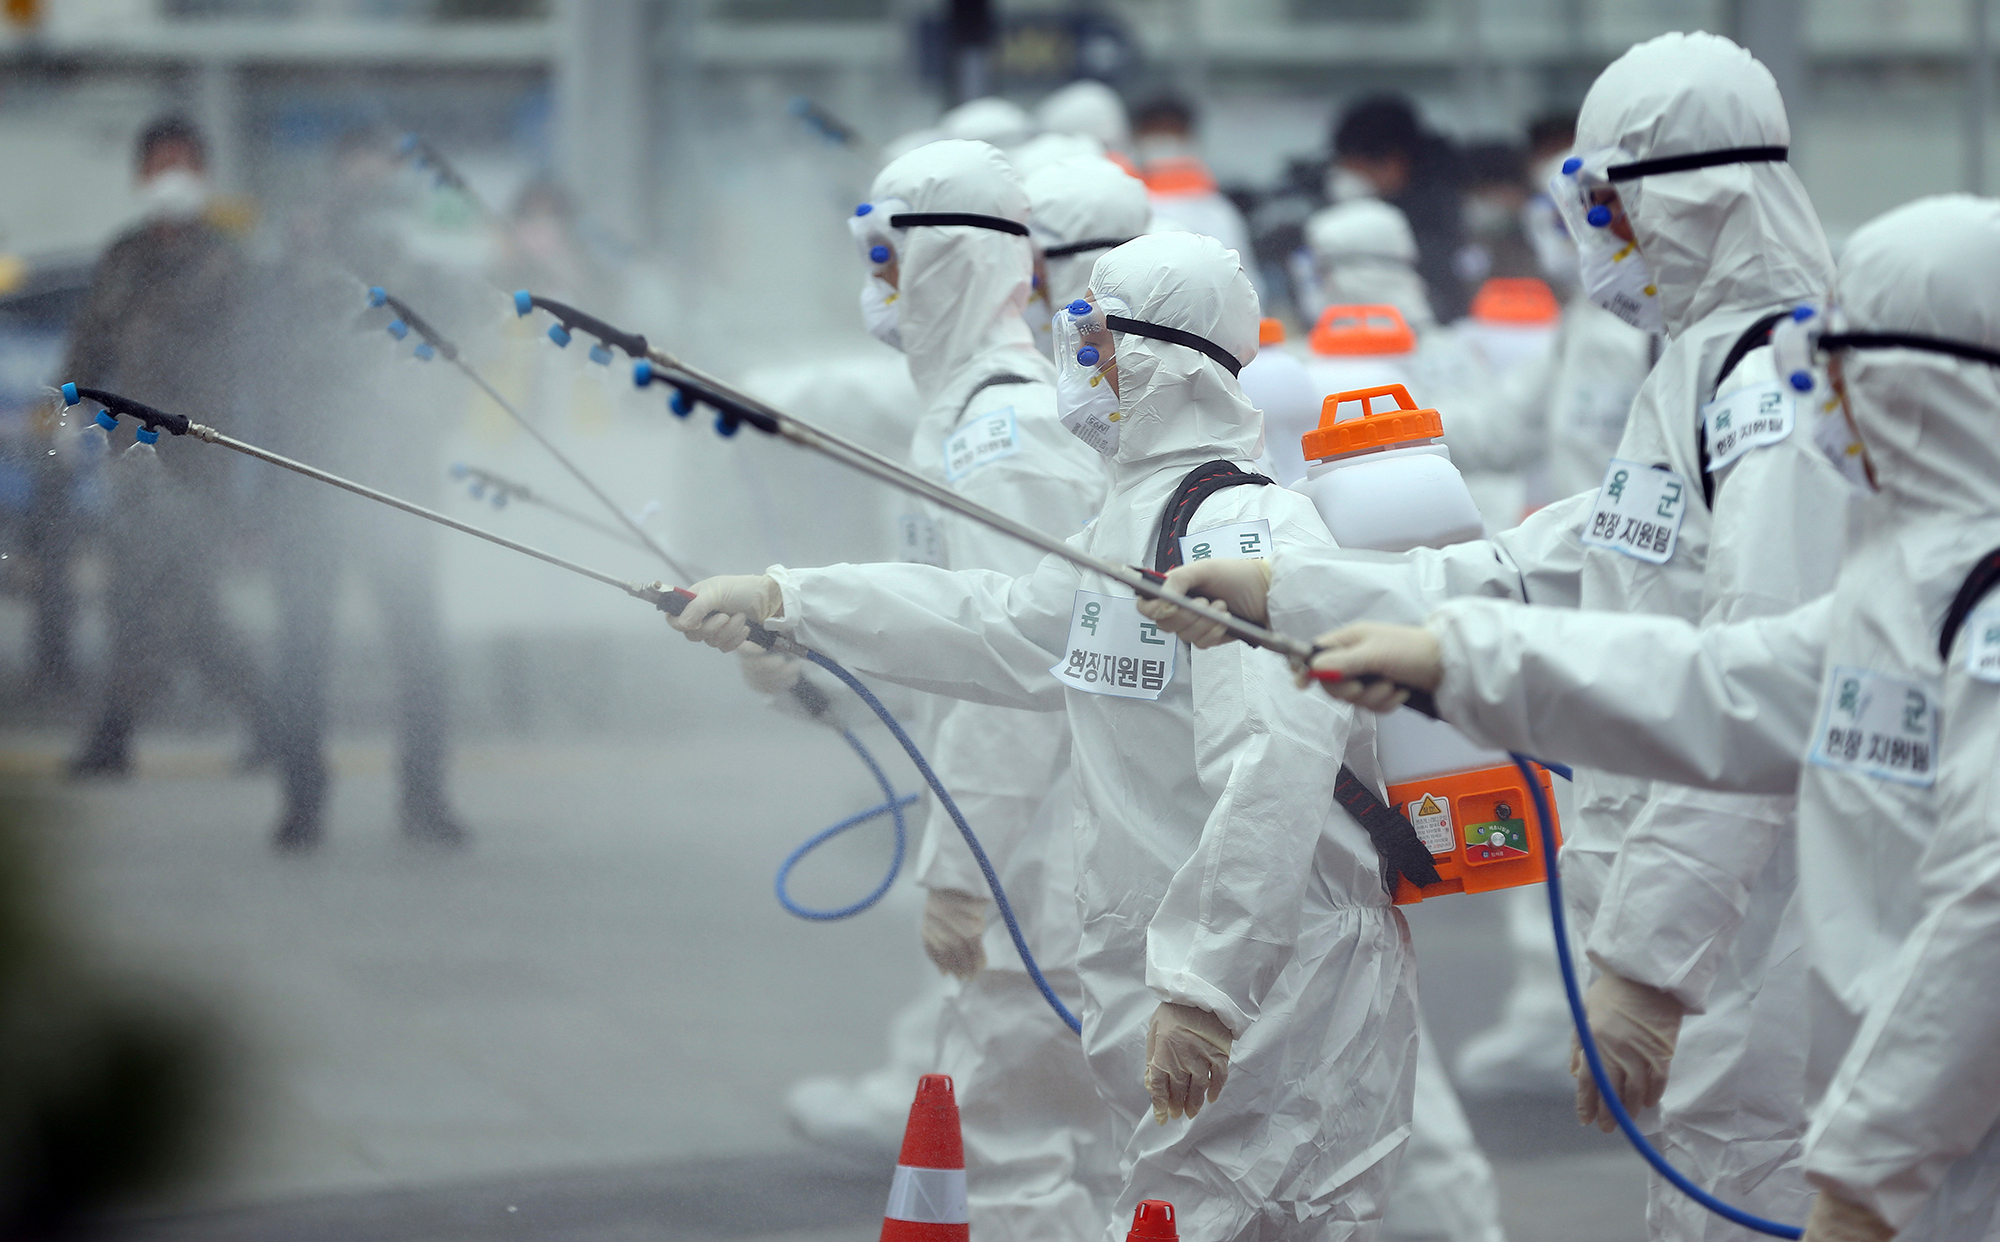 Army soldiers wearing protective suits spray disinfectant to prevent the spread of the new coronavirus at the Dongdaegu train station in Daegu, South Korea, Saturday, February 29.